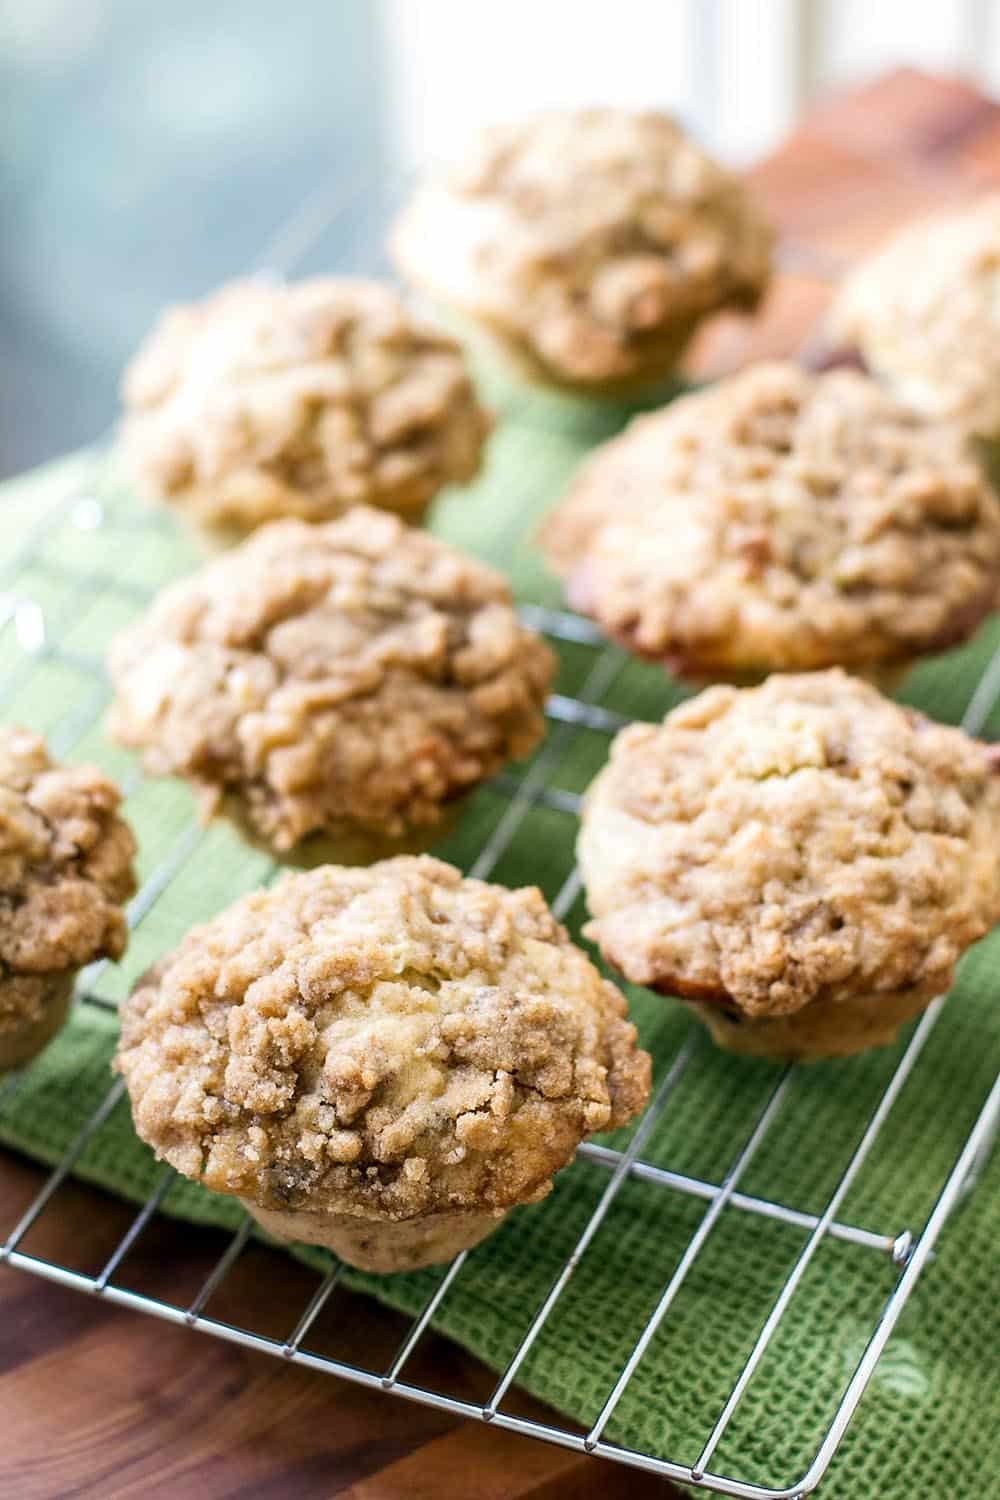 Banana nut muffins lined up on a bakers rack by a window